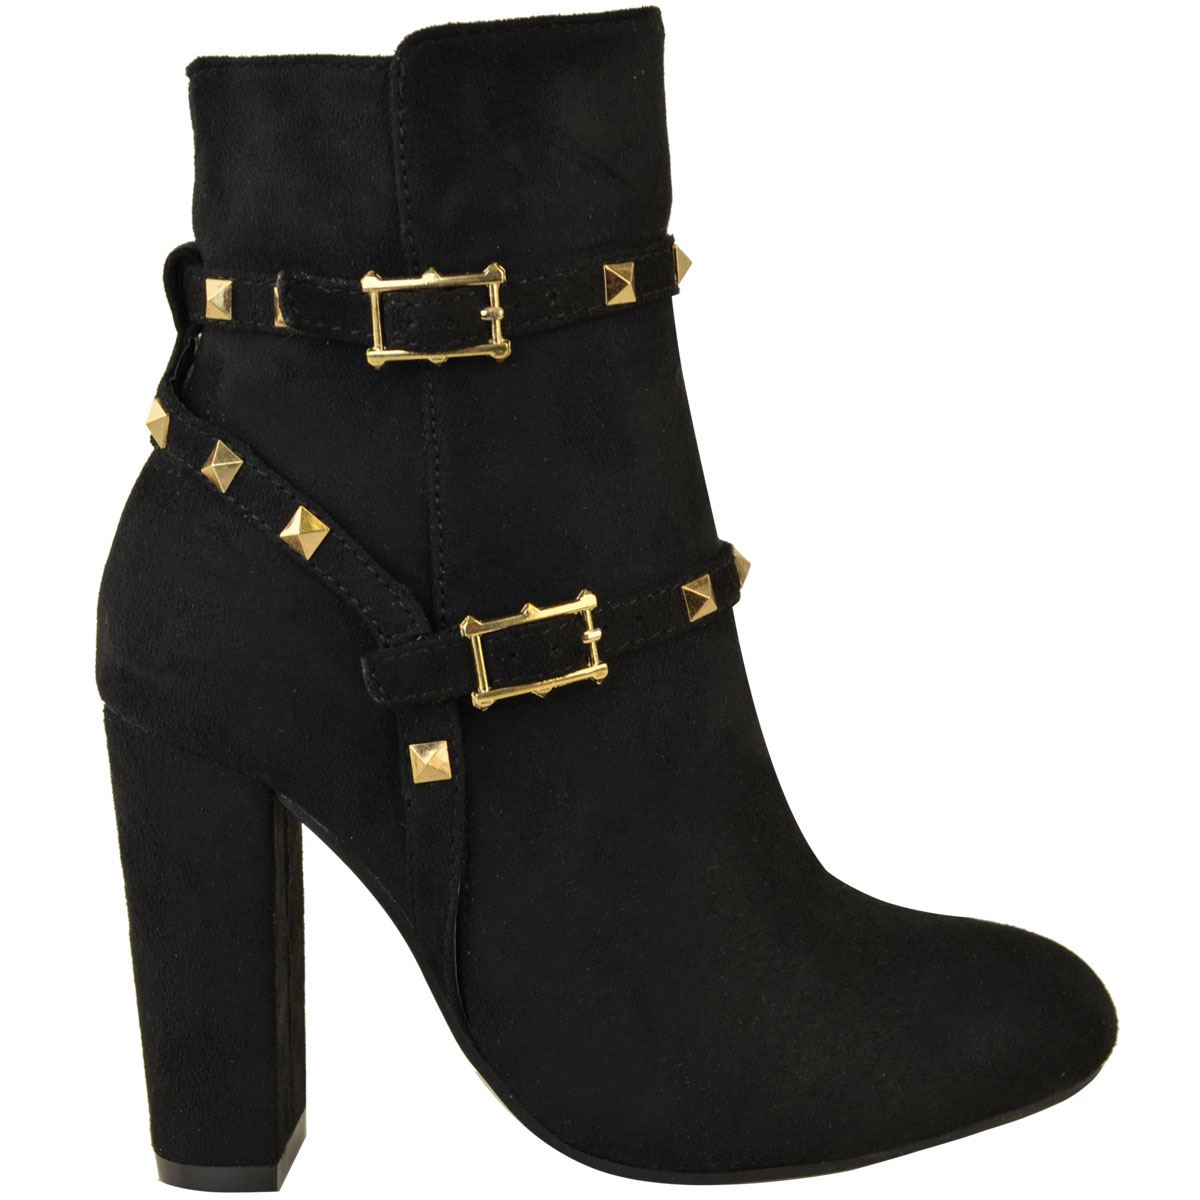 thumbnail 22 - WOMENS-LADIES-LOW-BLOCK-HEEL-CHELSEA-ANKLE-BOOTS-CUT-OUT-LACE-UP-SHOES-NEW-SIZE